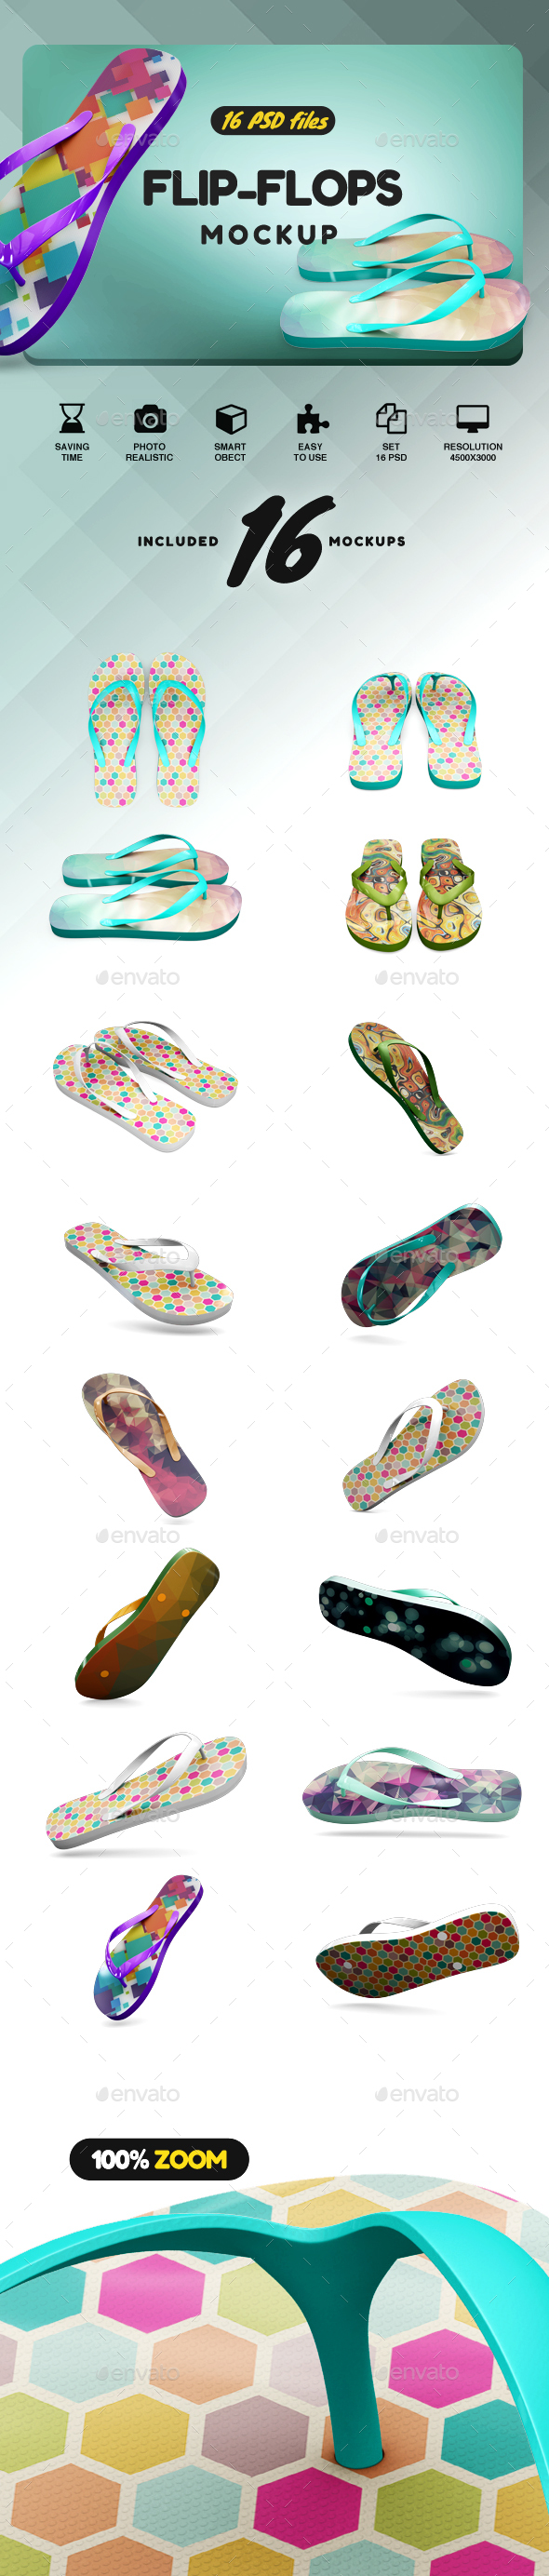 Flip Flop Mockup - Product Mock-Ups Graphics